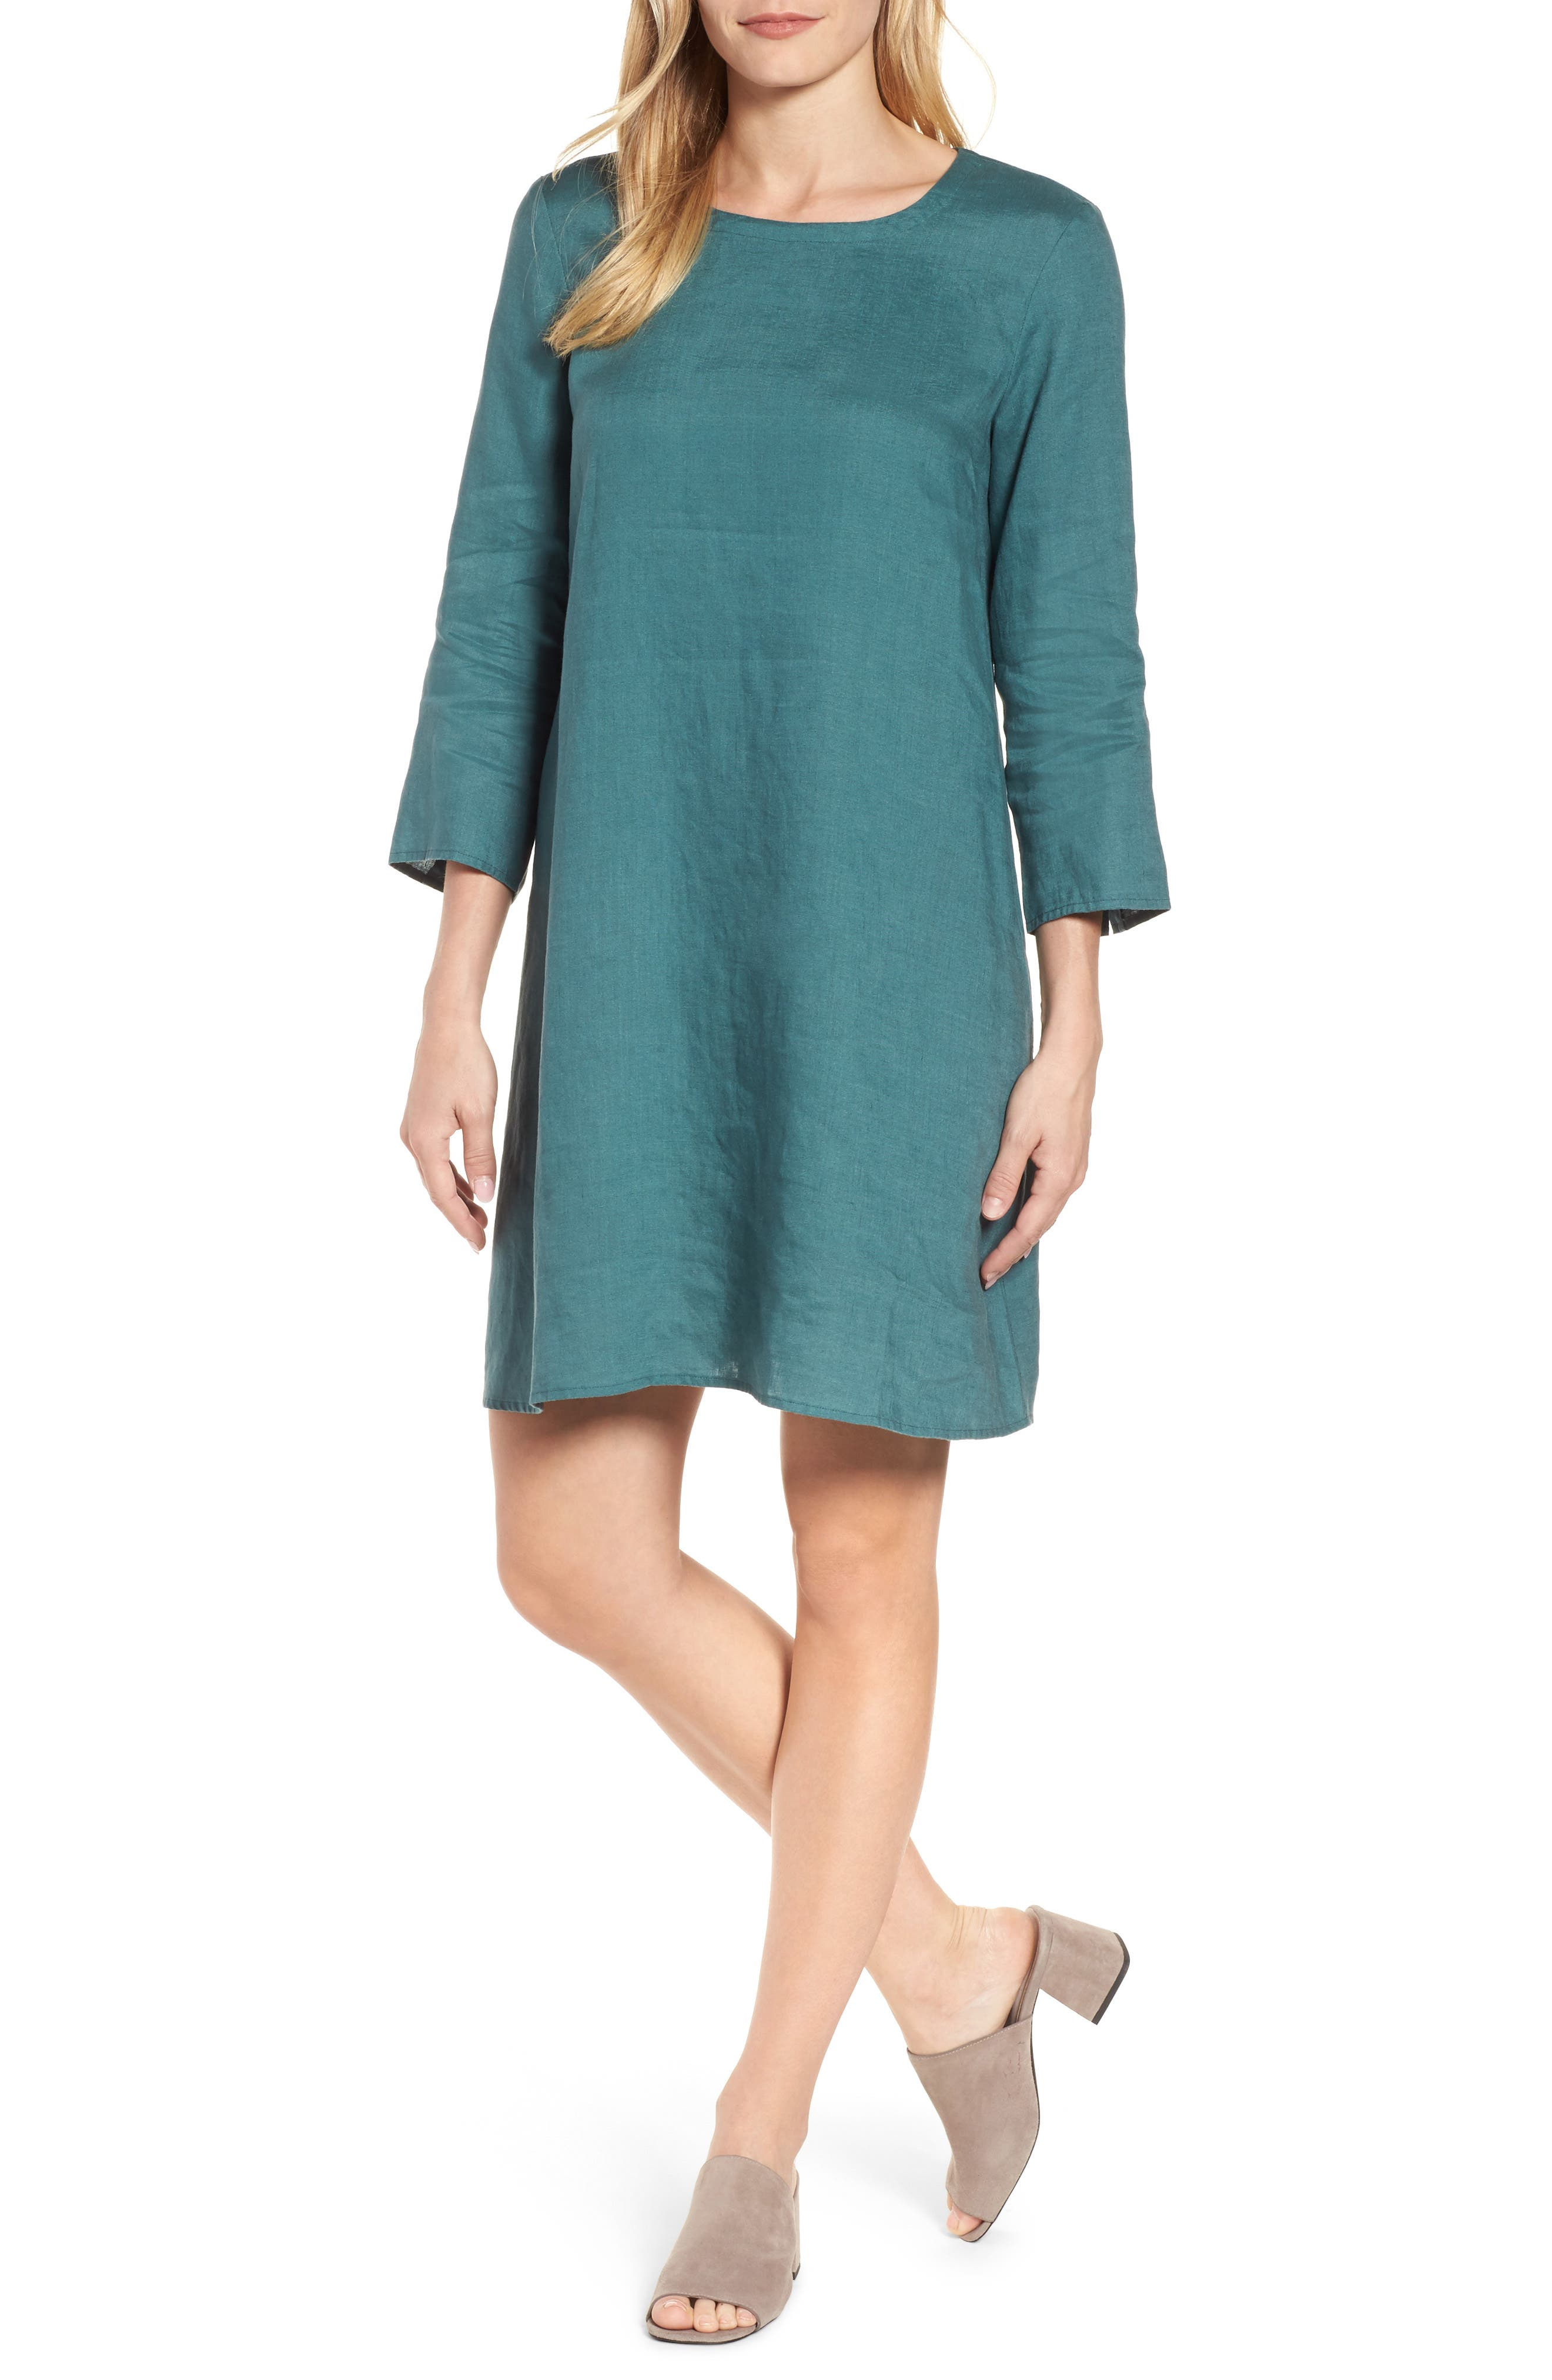 Organic Linen Round Neck Shift Dress,                             Main thumbnail 1, color,                             Teal